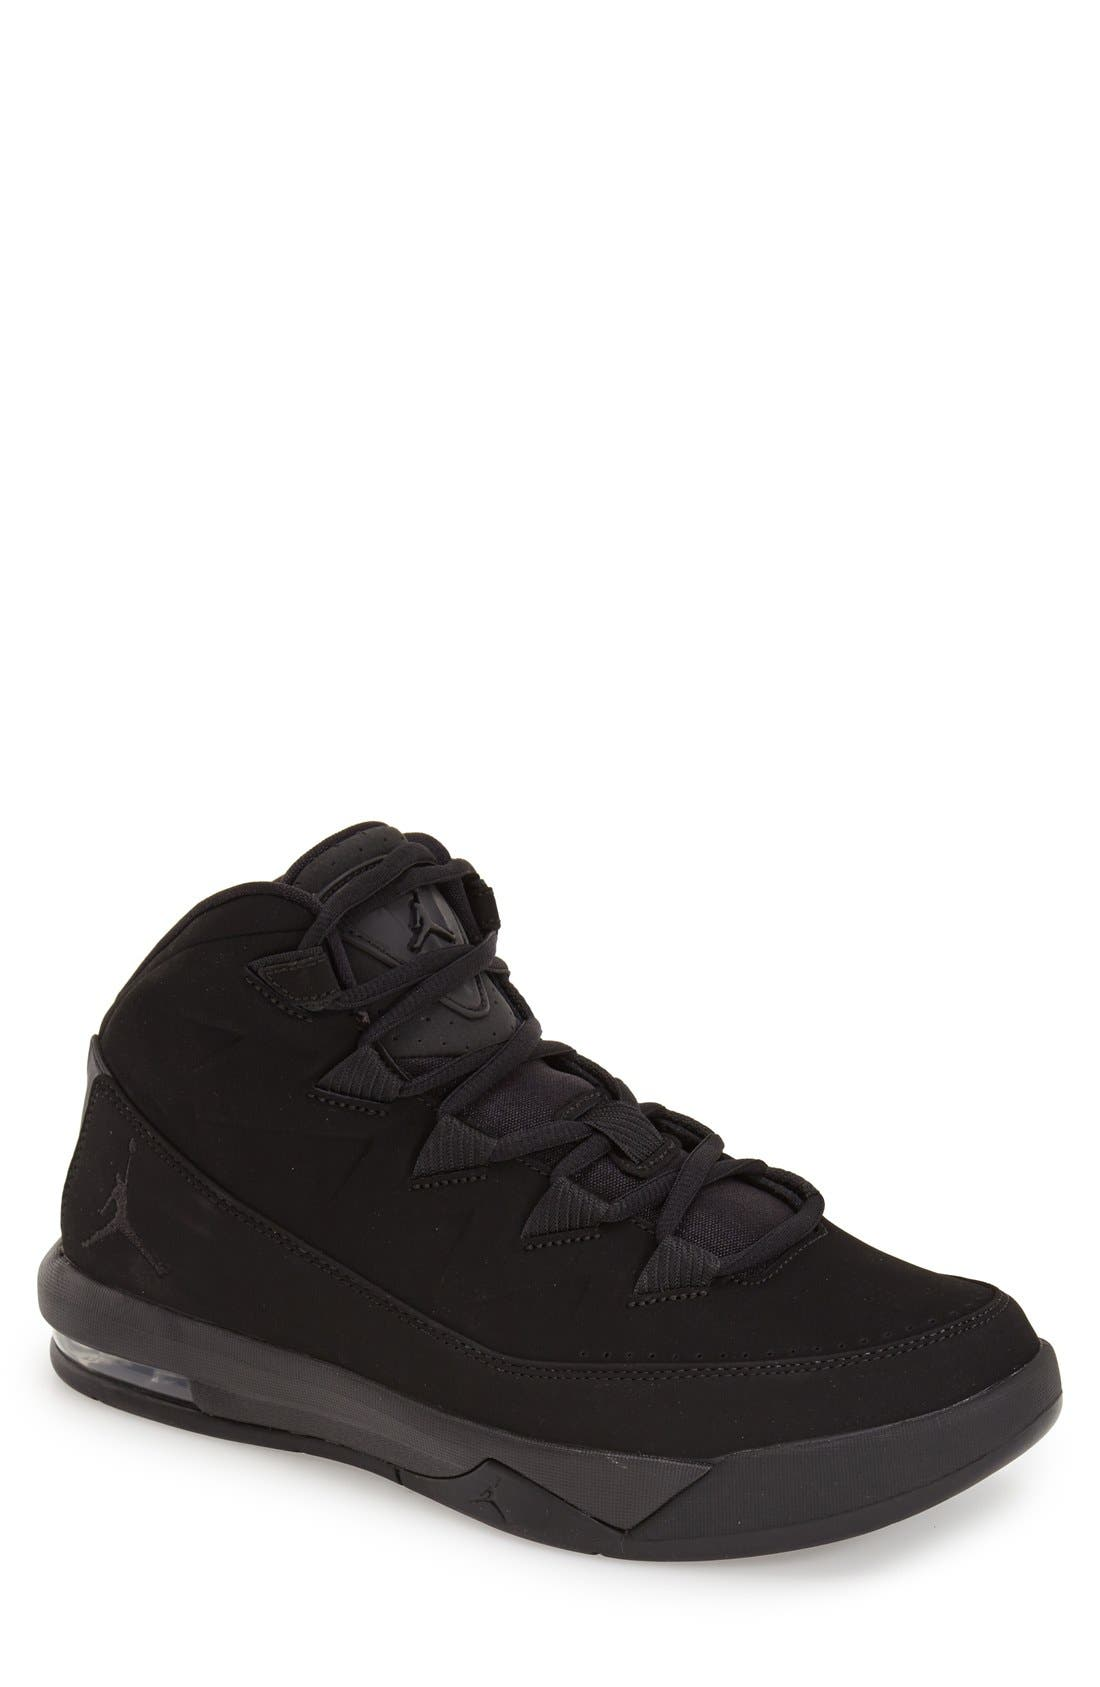 'Jordan Air Deluxe' Sneaker,                             Main thumbnail 1, color,                             010